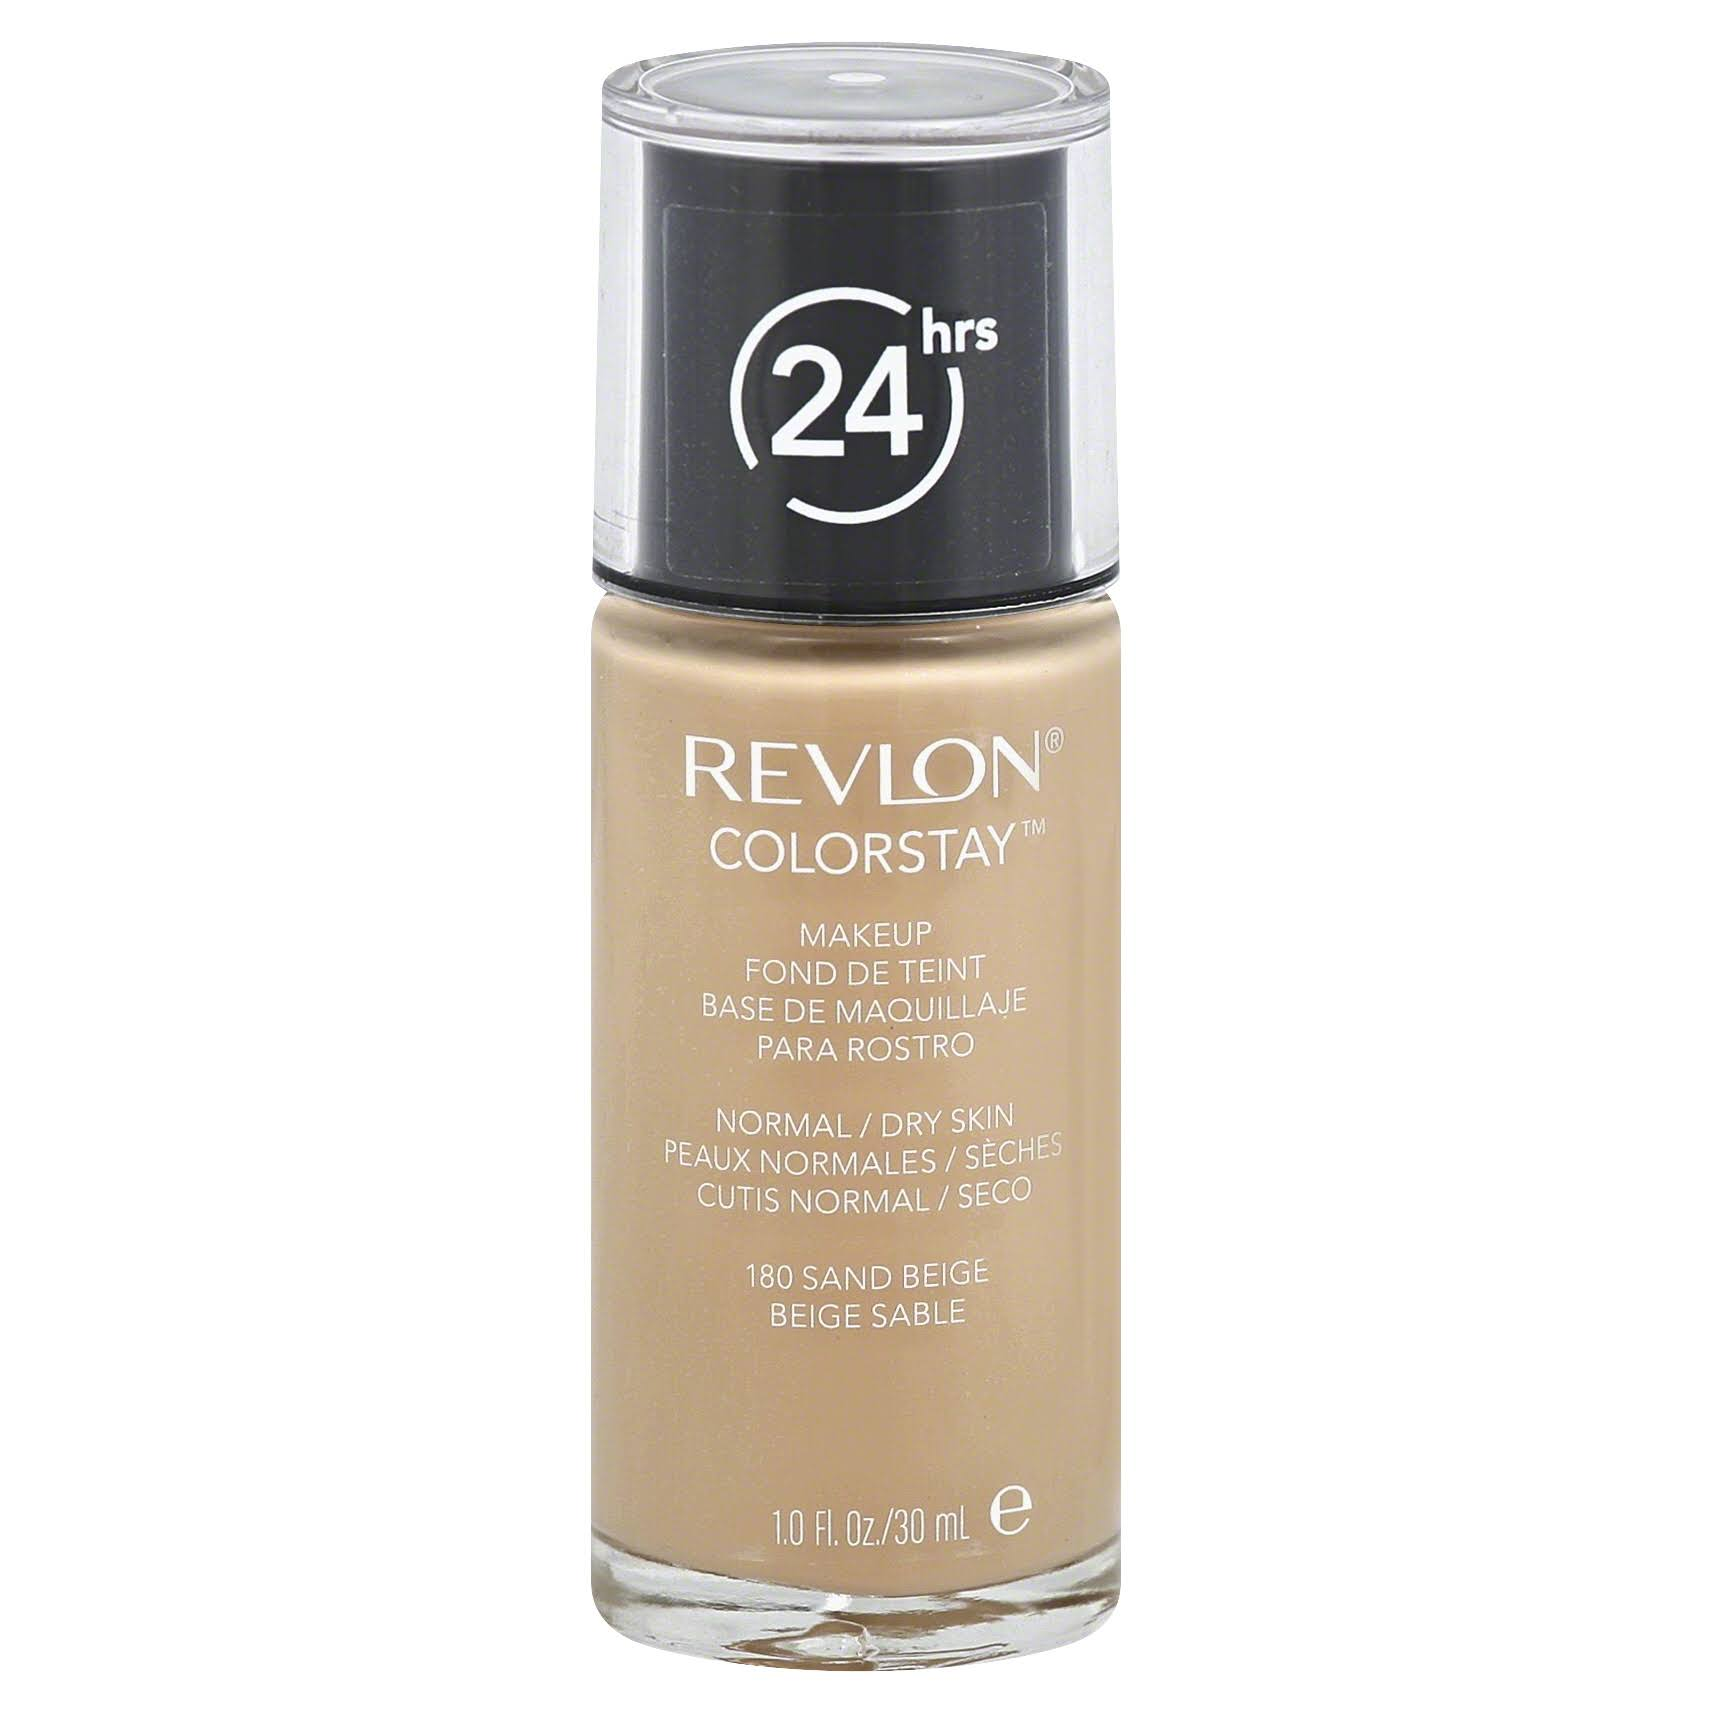 Revlon Color Stay Makeup - for Normal Dry Skin, Sand Beige